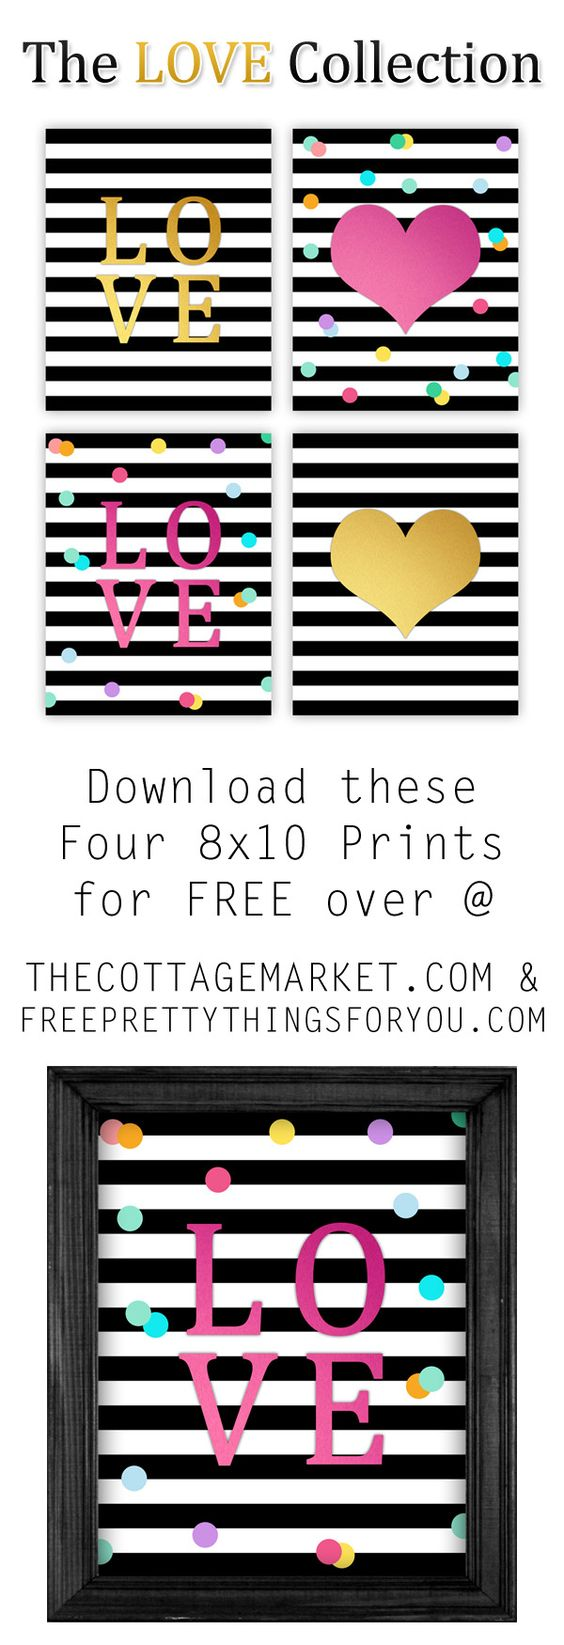 The LOVE Collection Valentine's Day Art FREE Printables to frame via The Cottage Market - Prints: 8x10 Love Printables- Free Pretty Things For You